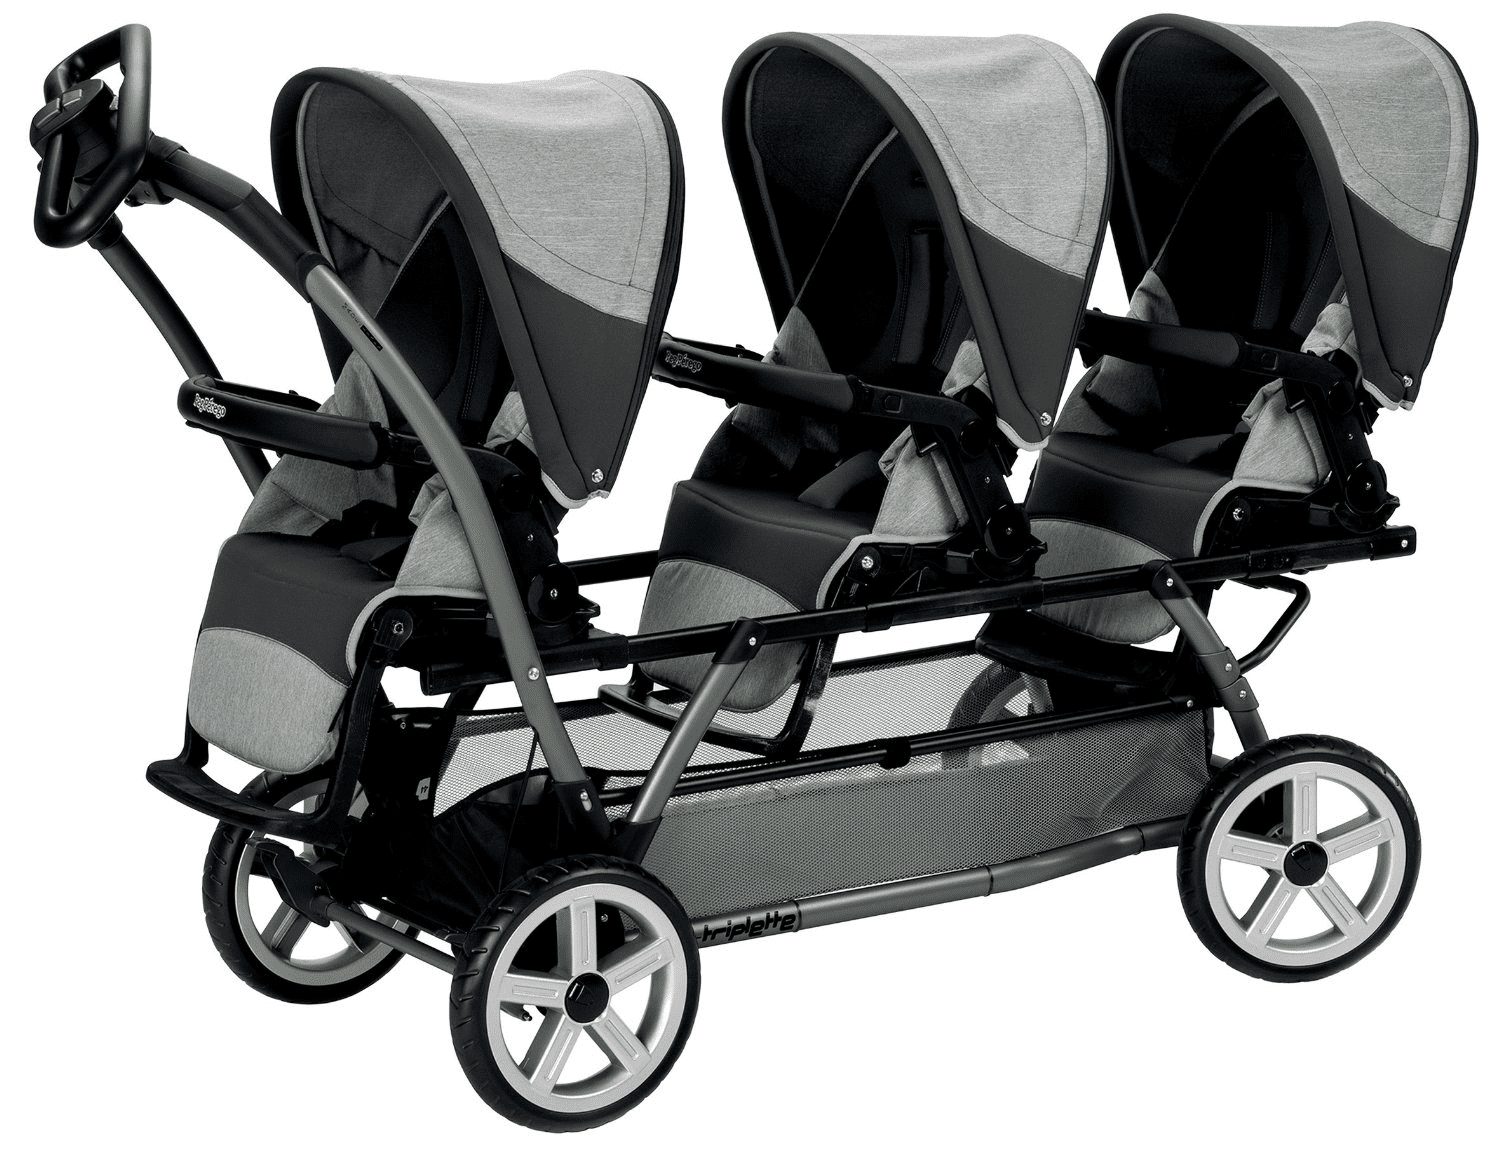 Image result for Strollers for twins: models, descriptions, recommendations. Strollers for twins 3 in 1